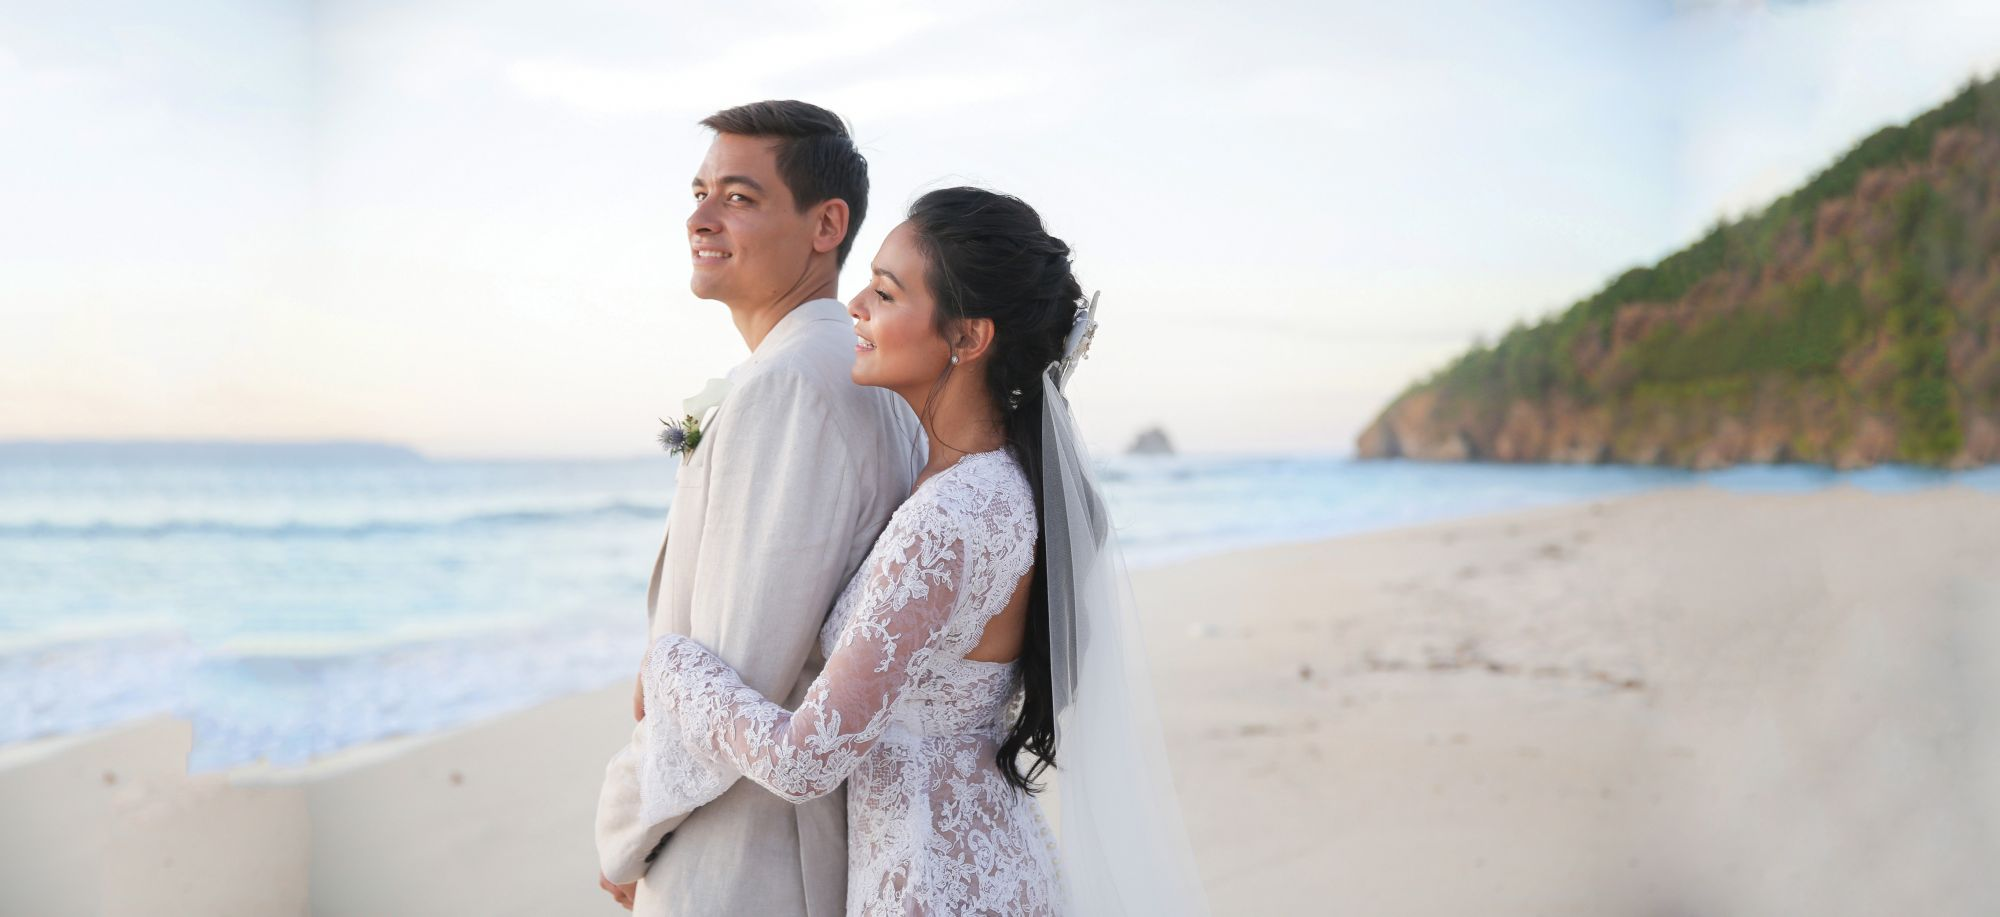 Moments in Time: Bridal Tips From Iza Calzado-Wintle